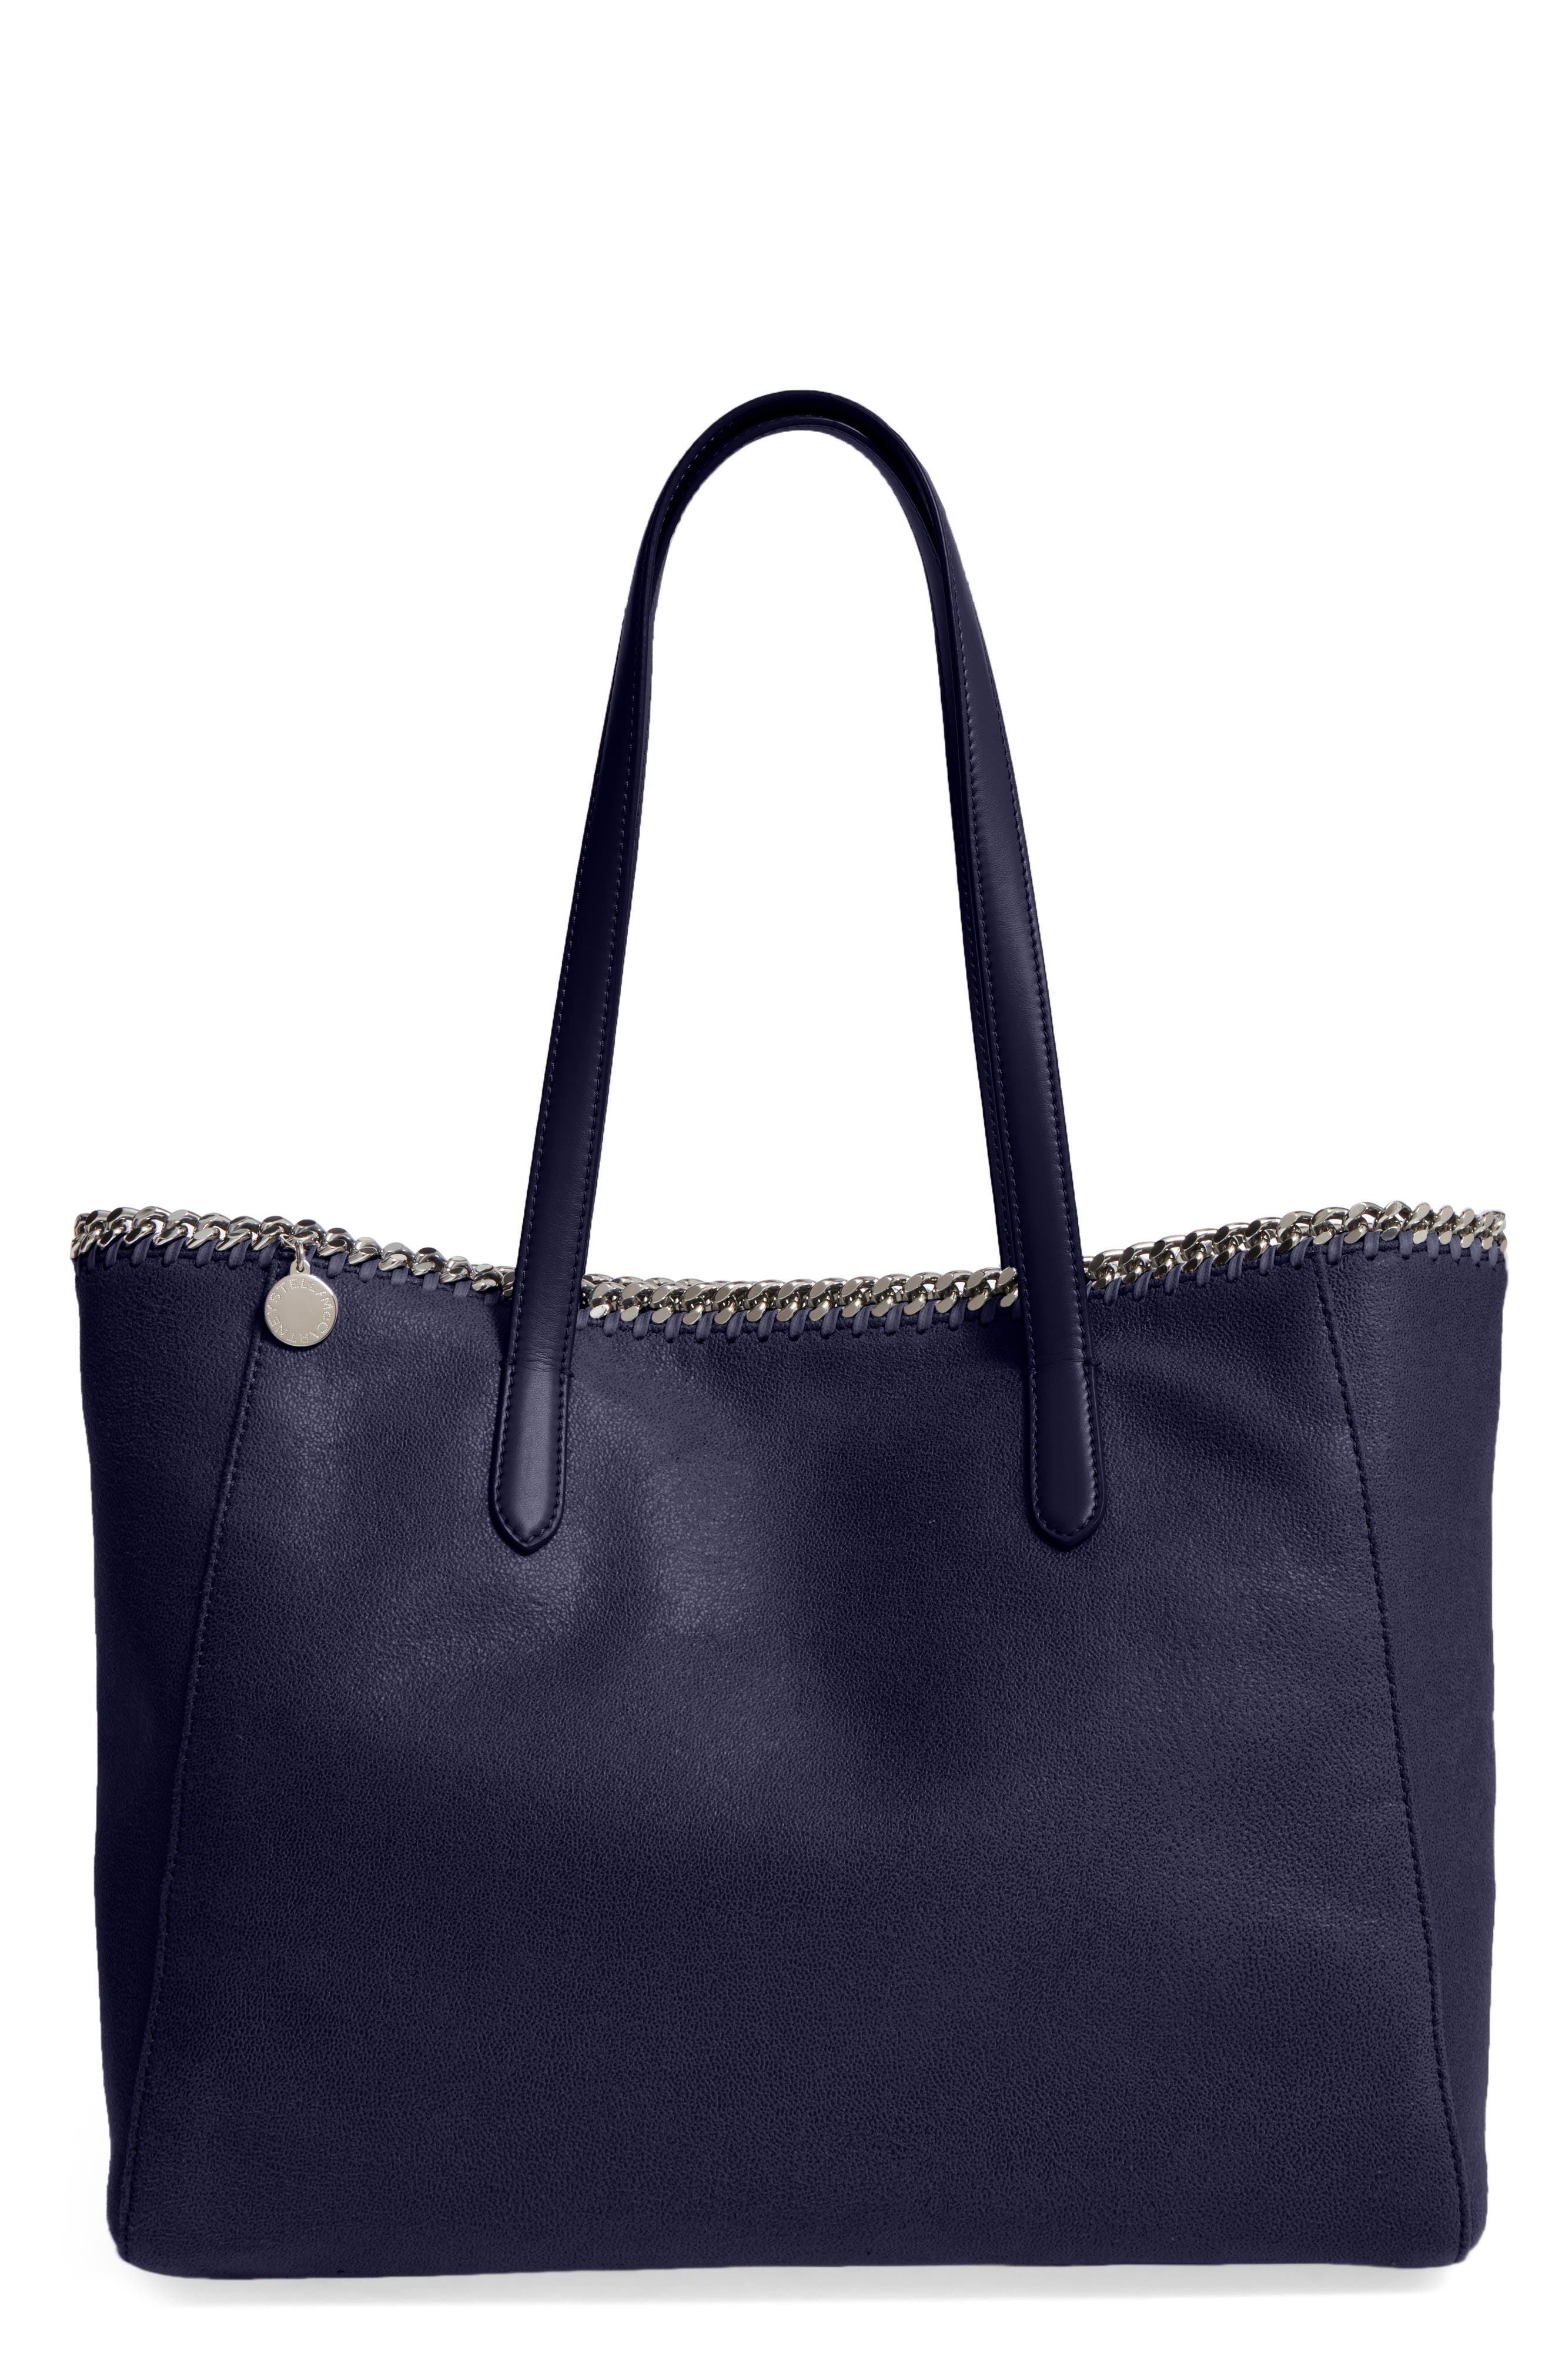 STELLA MCCARTNEY Falabella - Shaggy Deer Faux Leather Tote